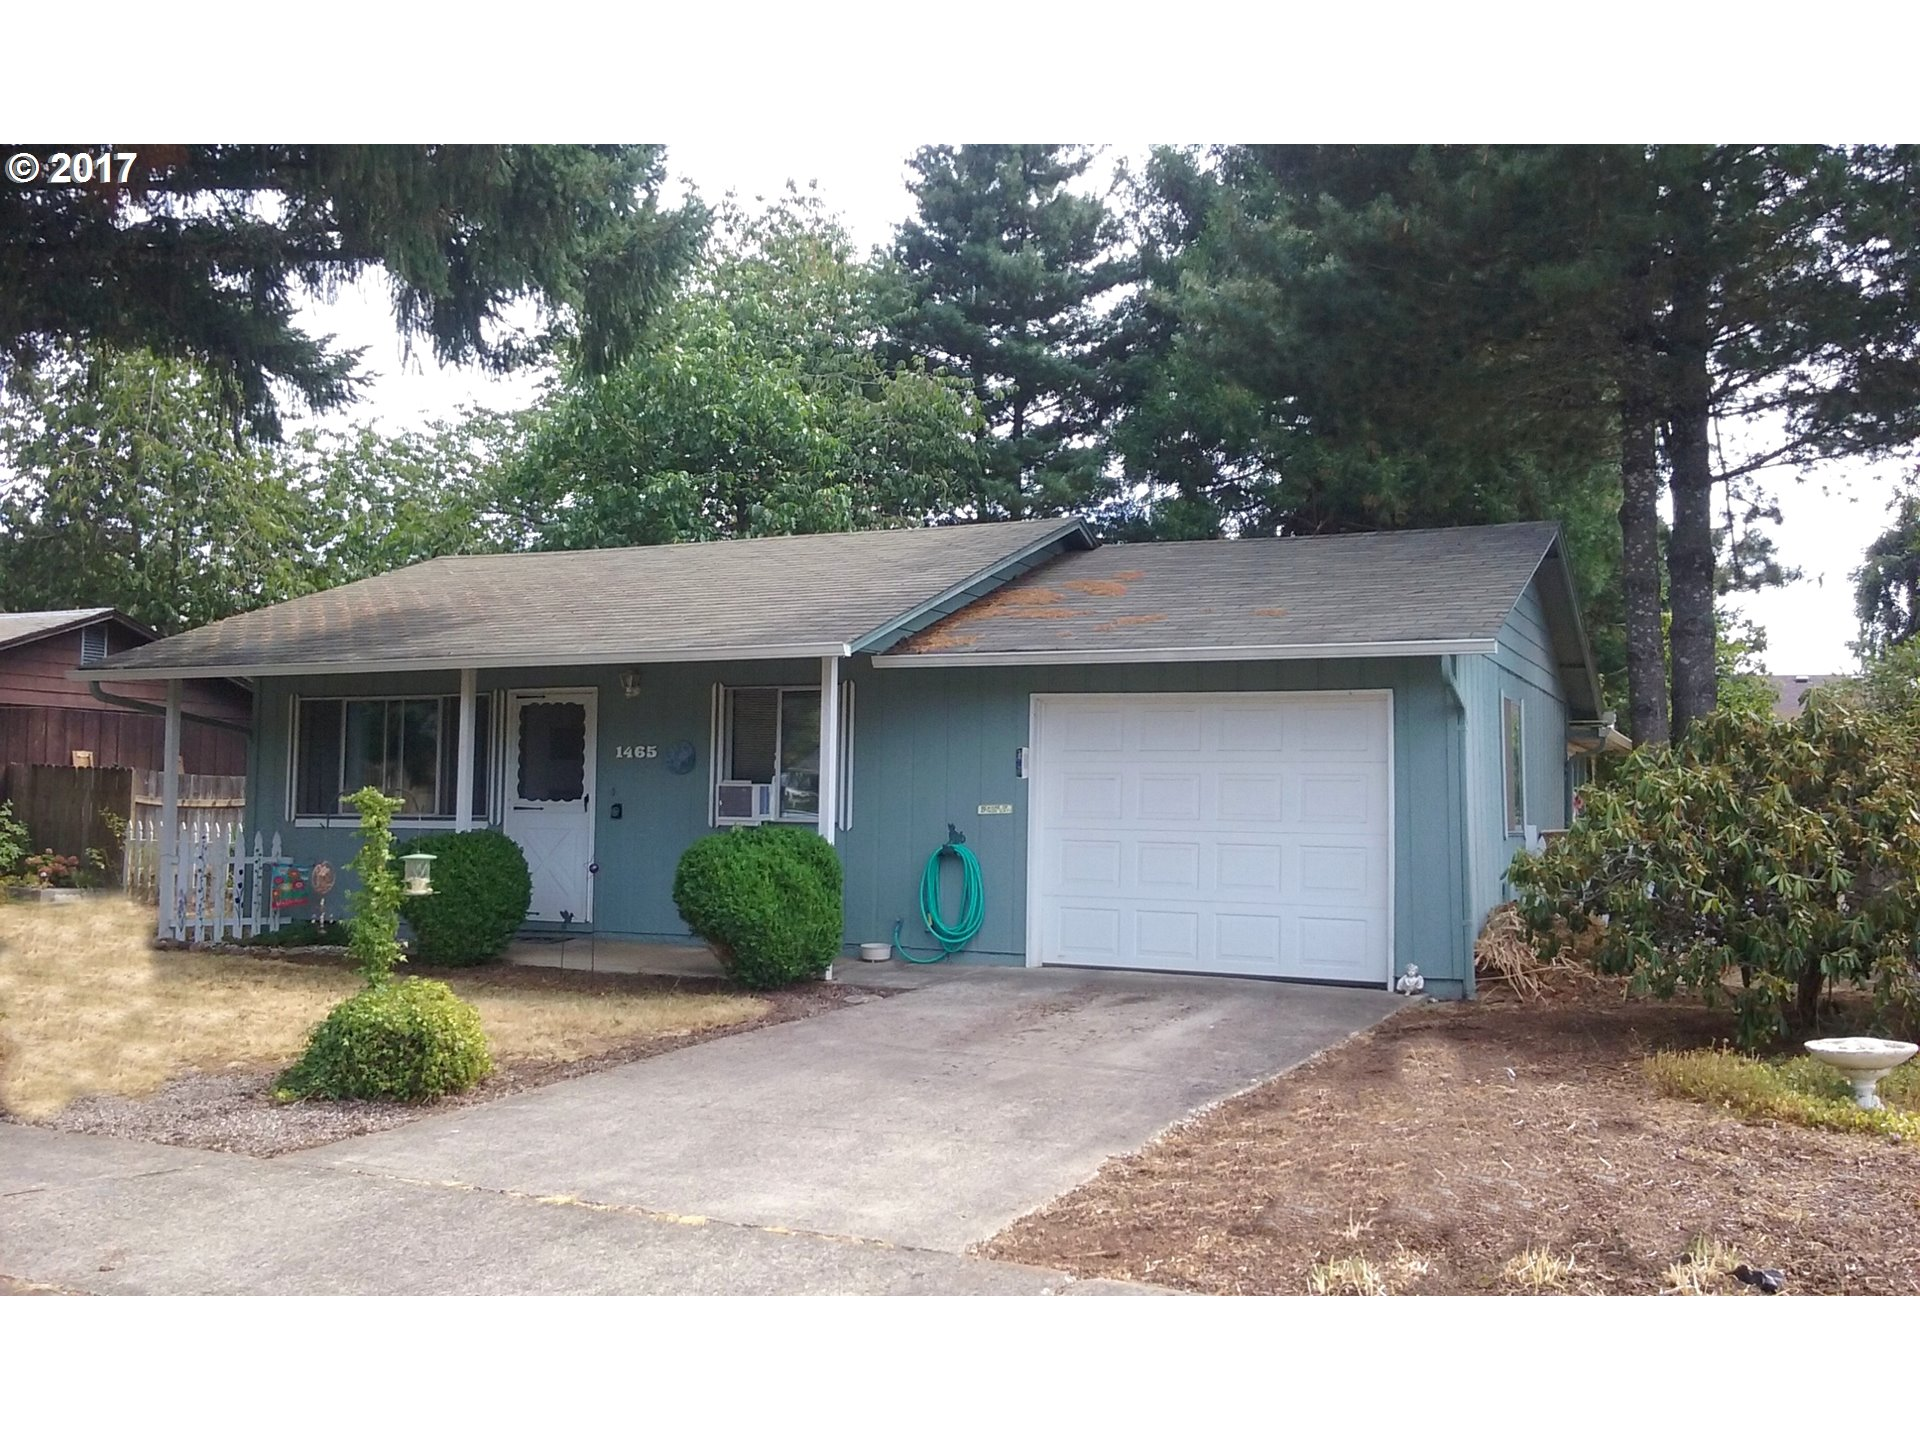 1465 EDISON AVE, Cottage Grove OR 97424